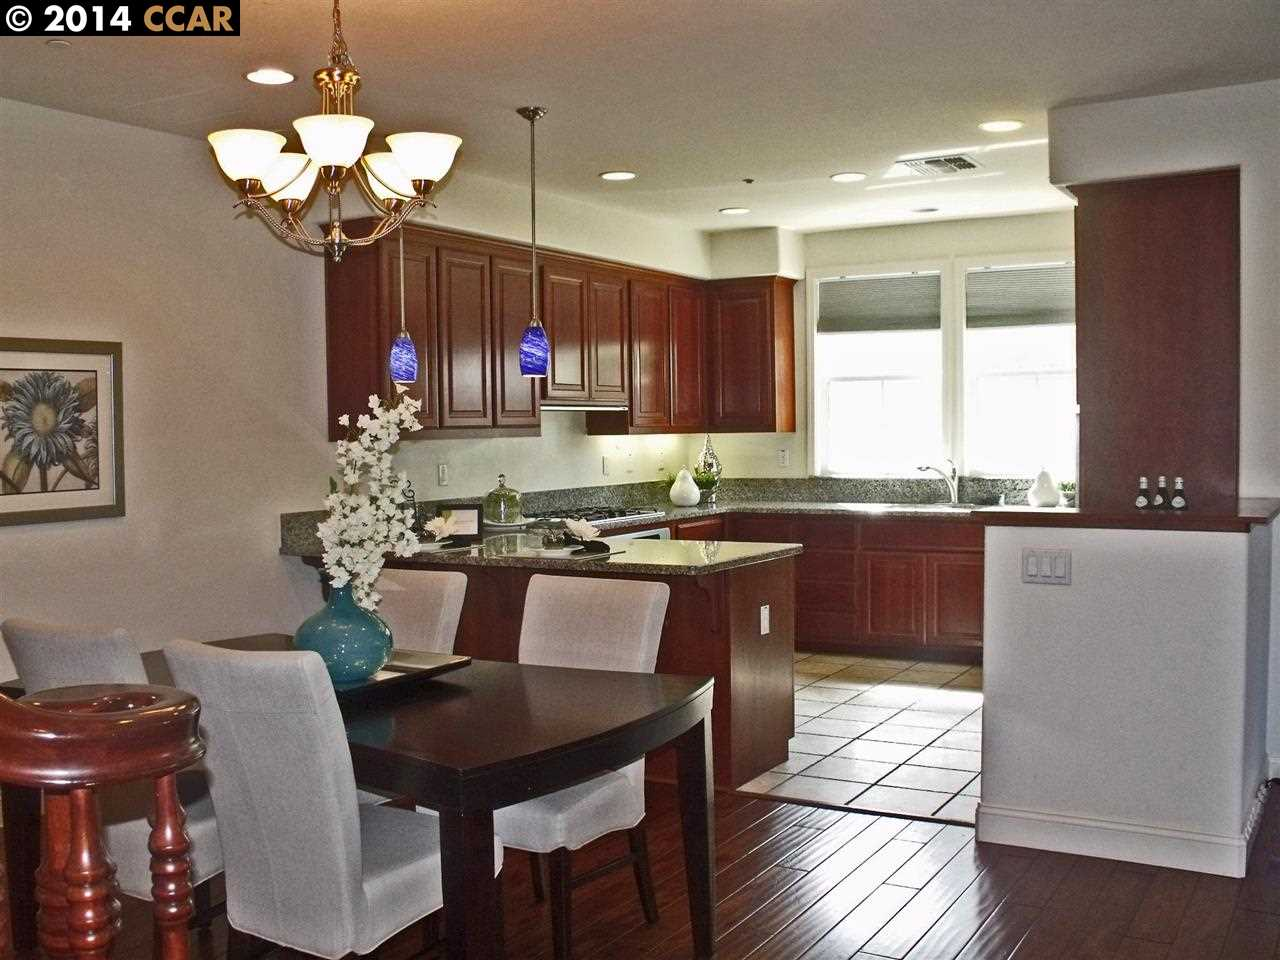 Additional photo for property listing at 4556 MIRANO Court  Dublin, カリフォルニア 94568 アメリカ合衆国